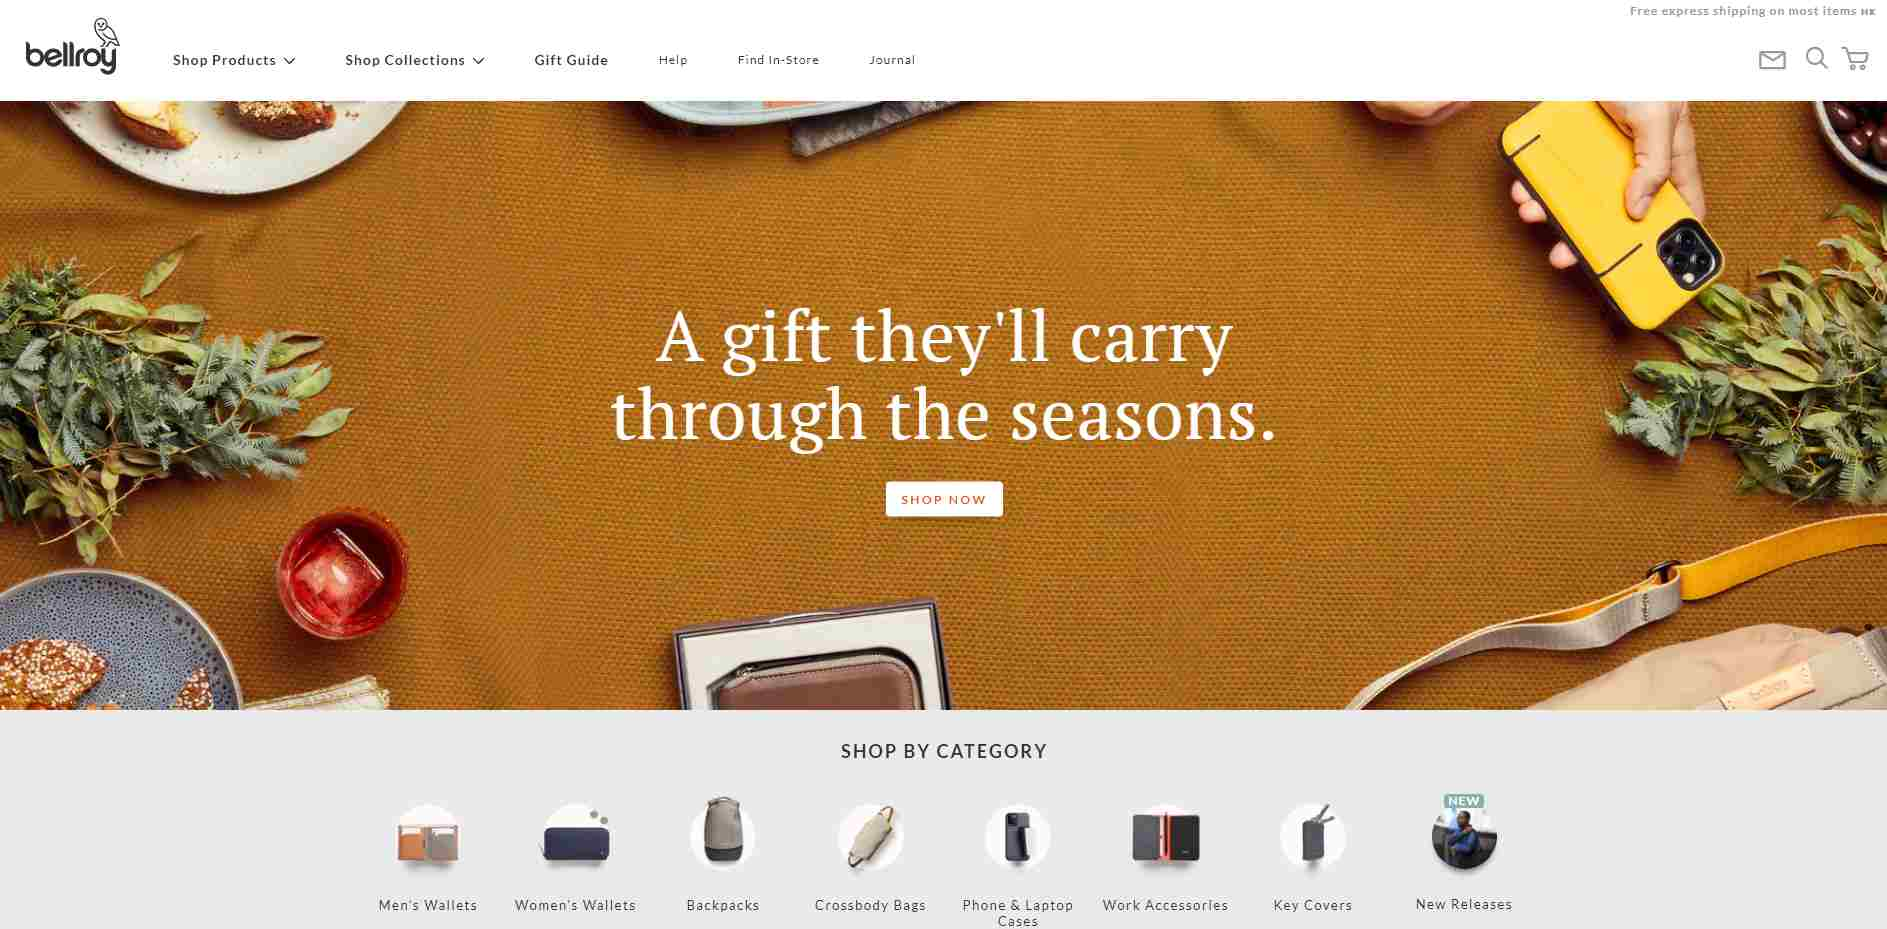 bellroy-image.png